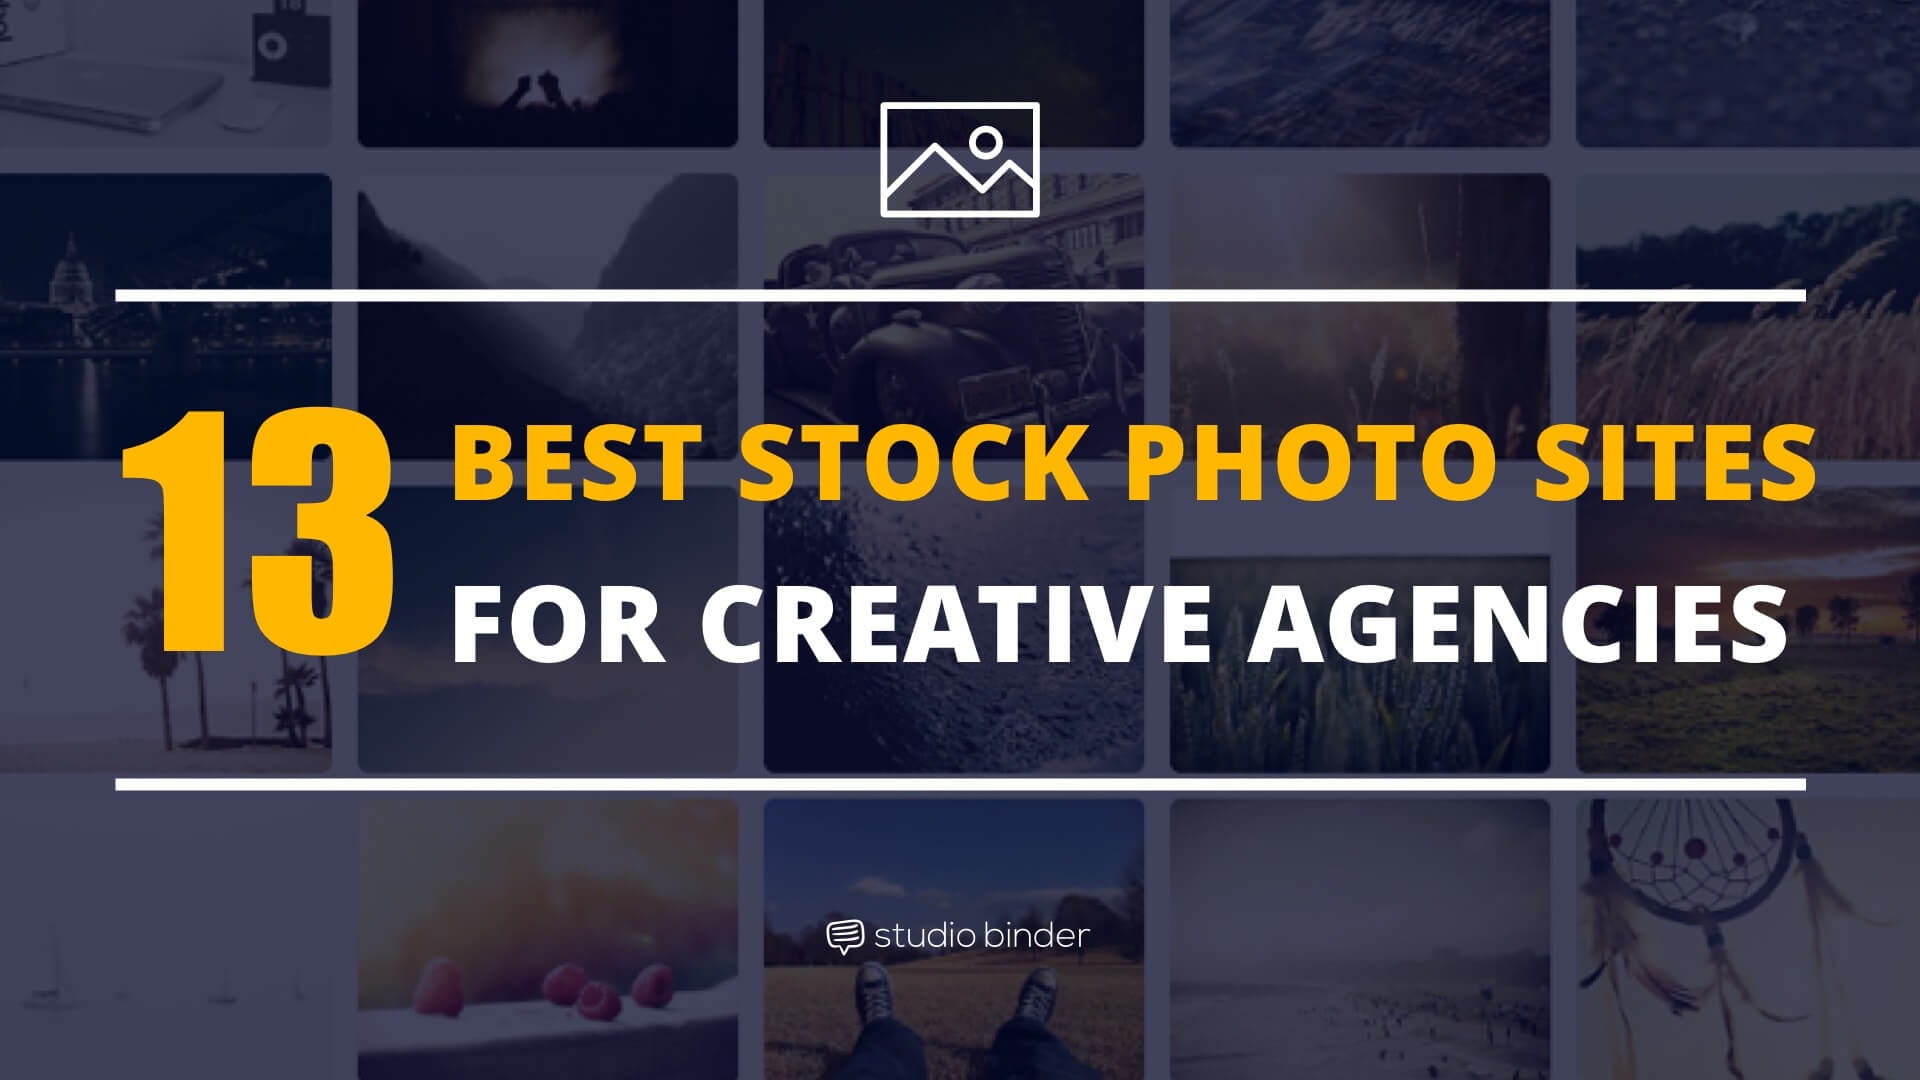 13 Best Stock Photo Sites for Creative Agencies - Featured - StudioBinder